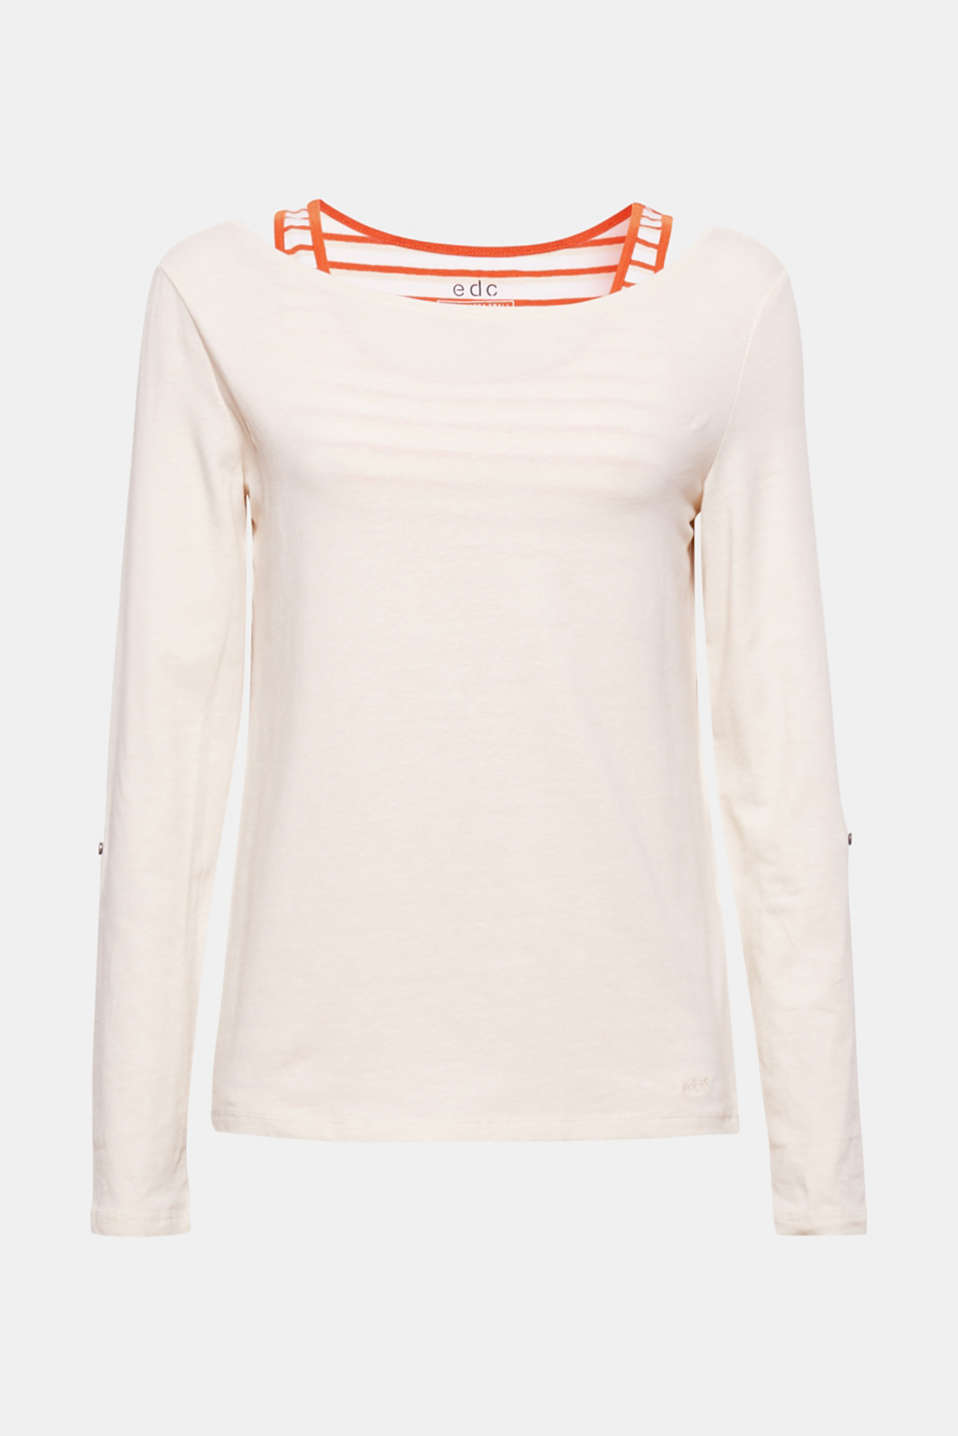 We love layering! An interwoven vest gives this long sleeve top a sporty layered look.